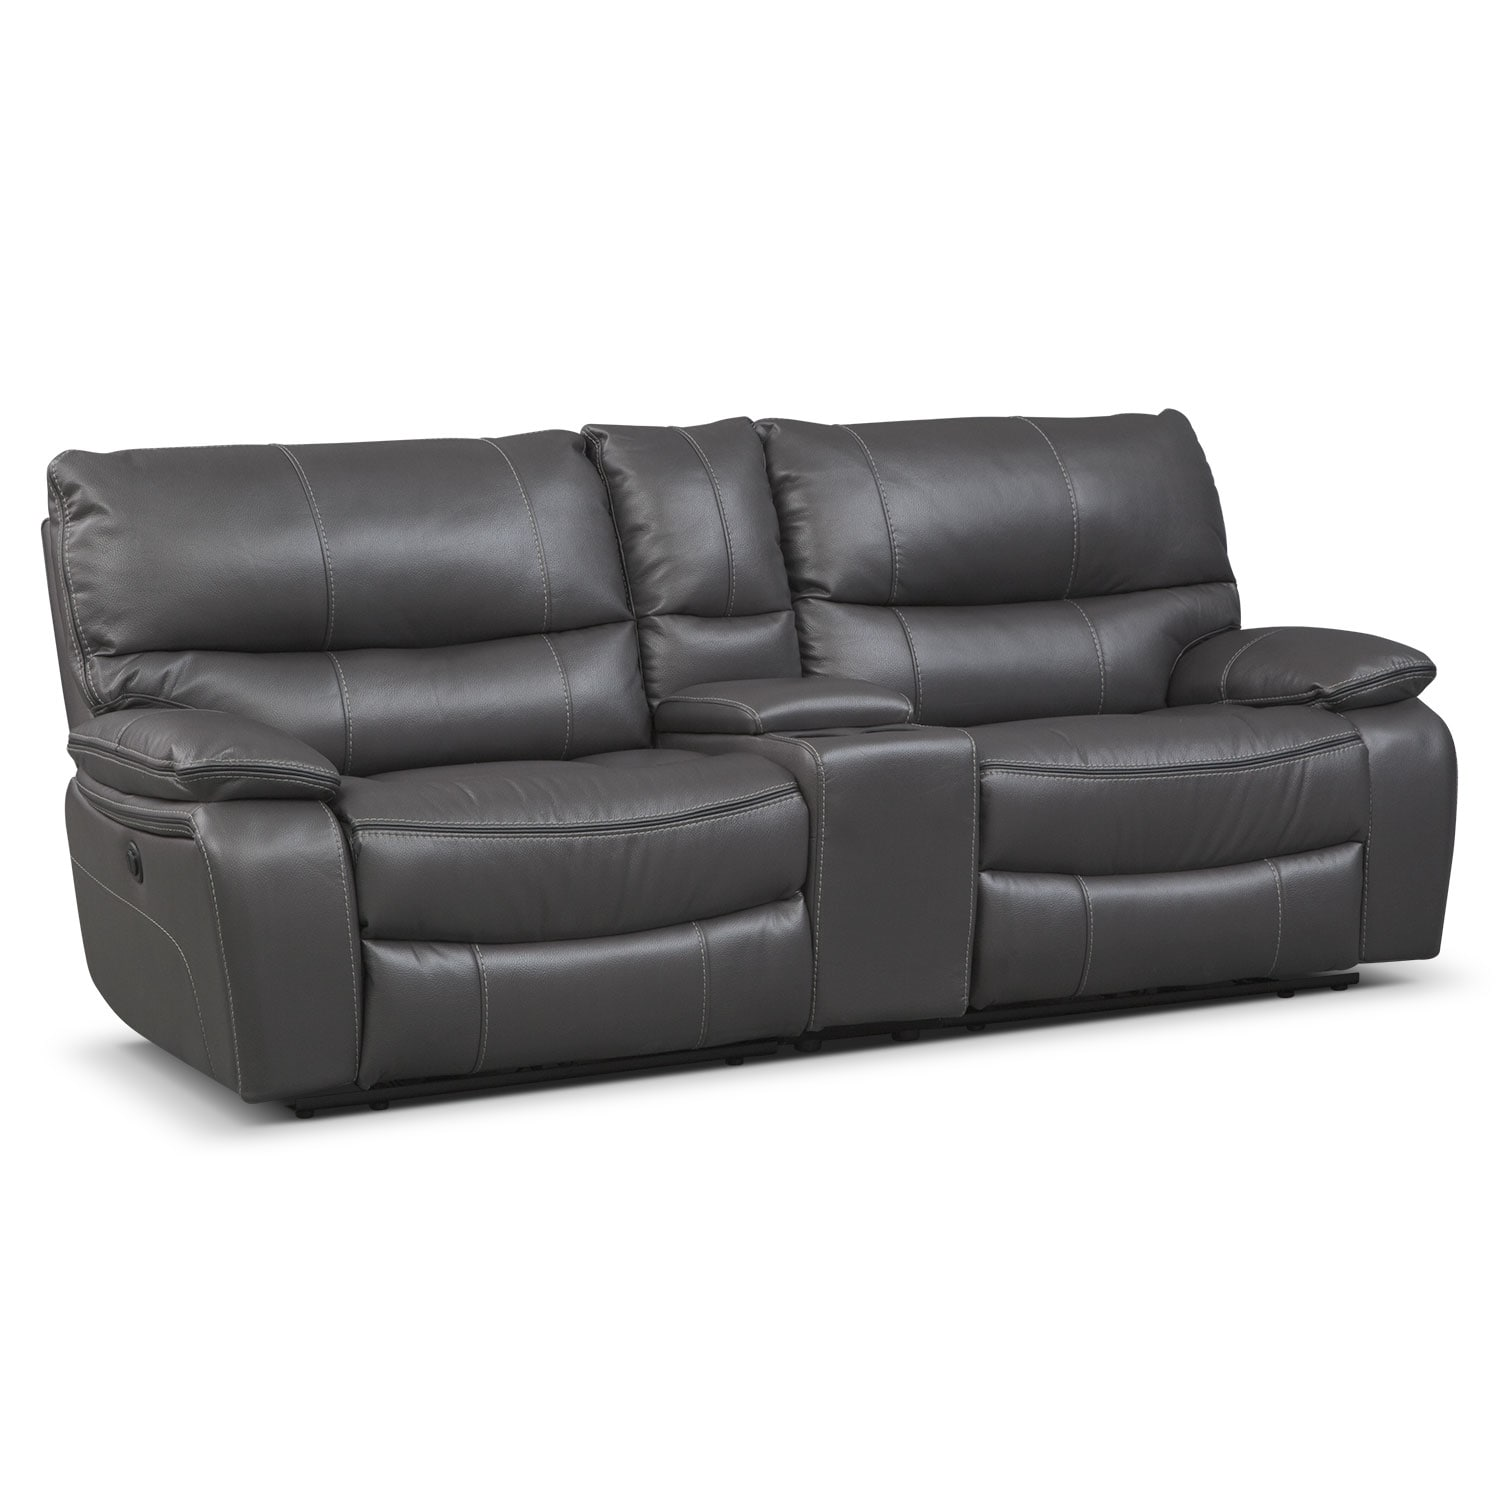 Orlando Power Reclining Sofa With Console Gray American Signature Furniture